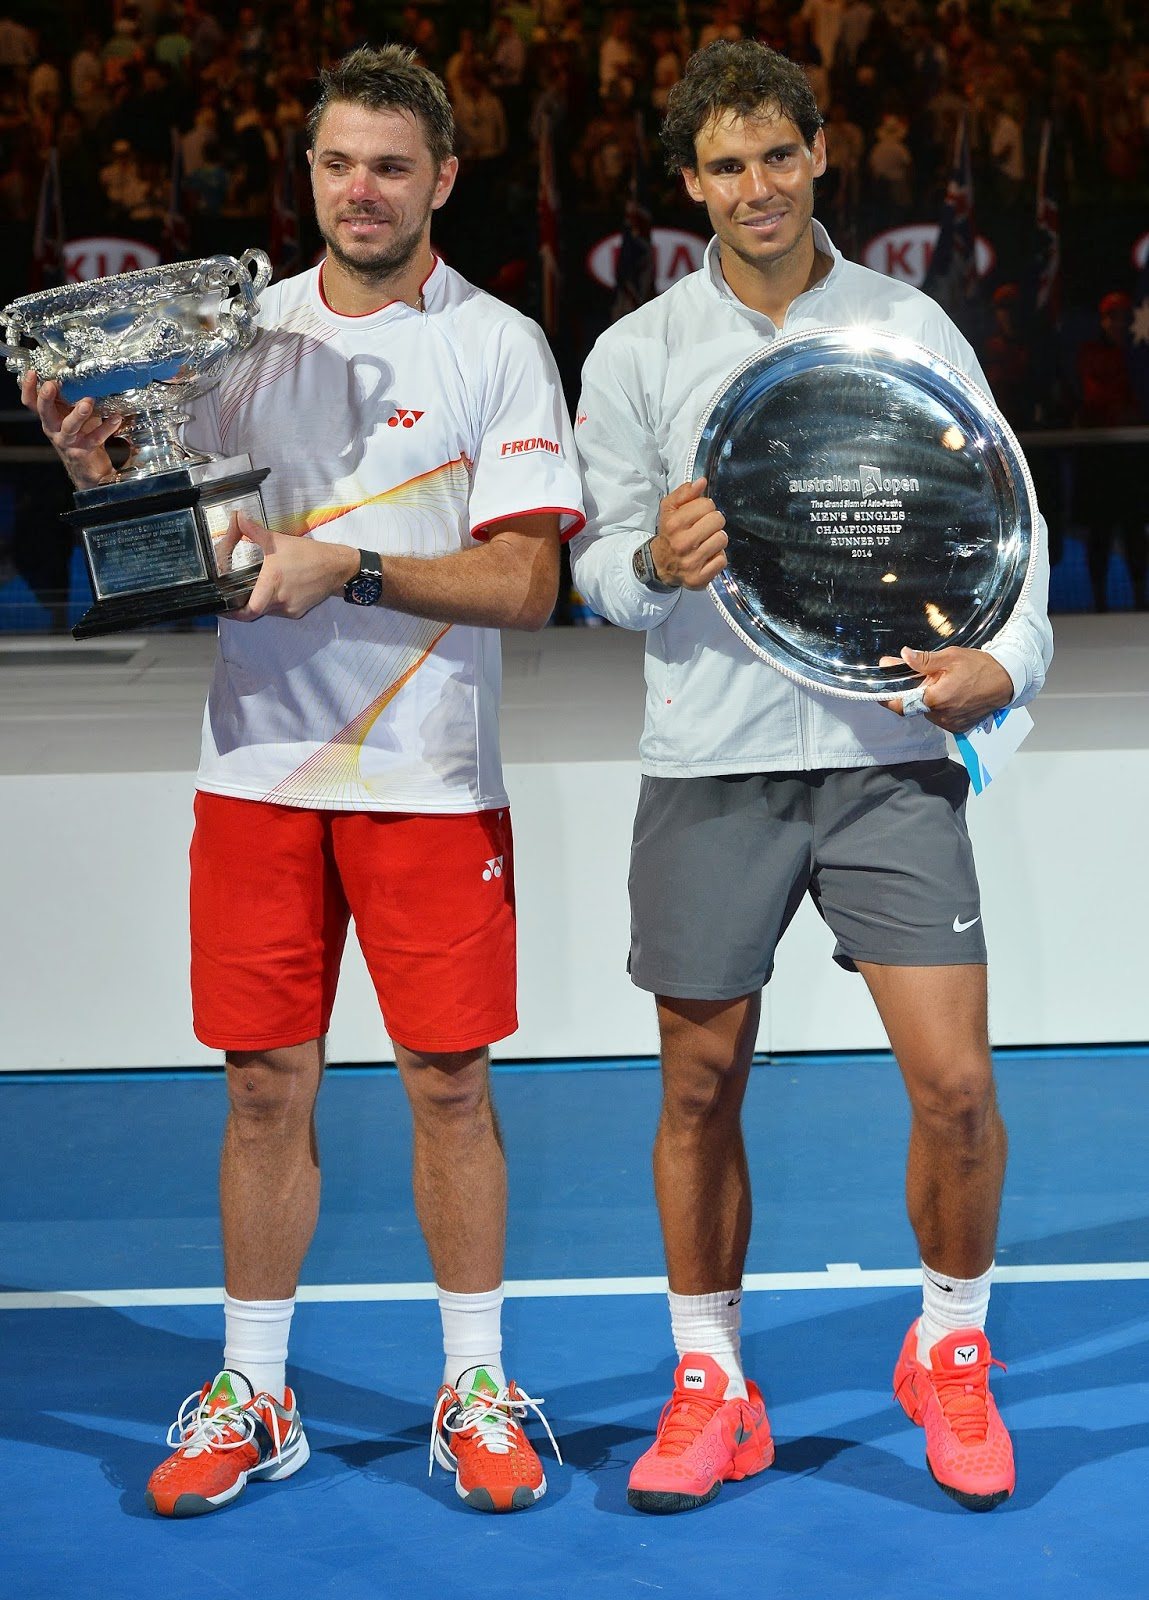 2014, Australia, Australian Open, Final, Grand slam, Injured, Melbourne, Rafael Nadal, Singles, Spain, Sports, Stanislas Wawrinka, Switzerland, Tennis, Title, Trophy, Victory, Winner,